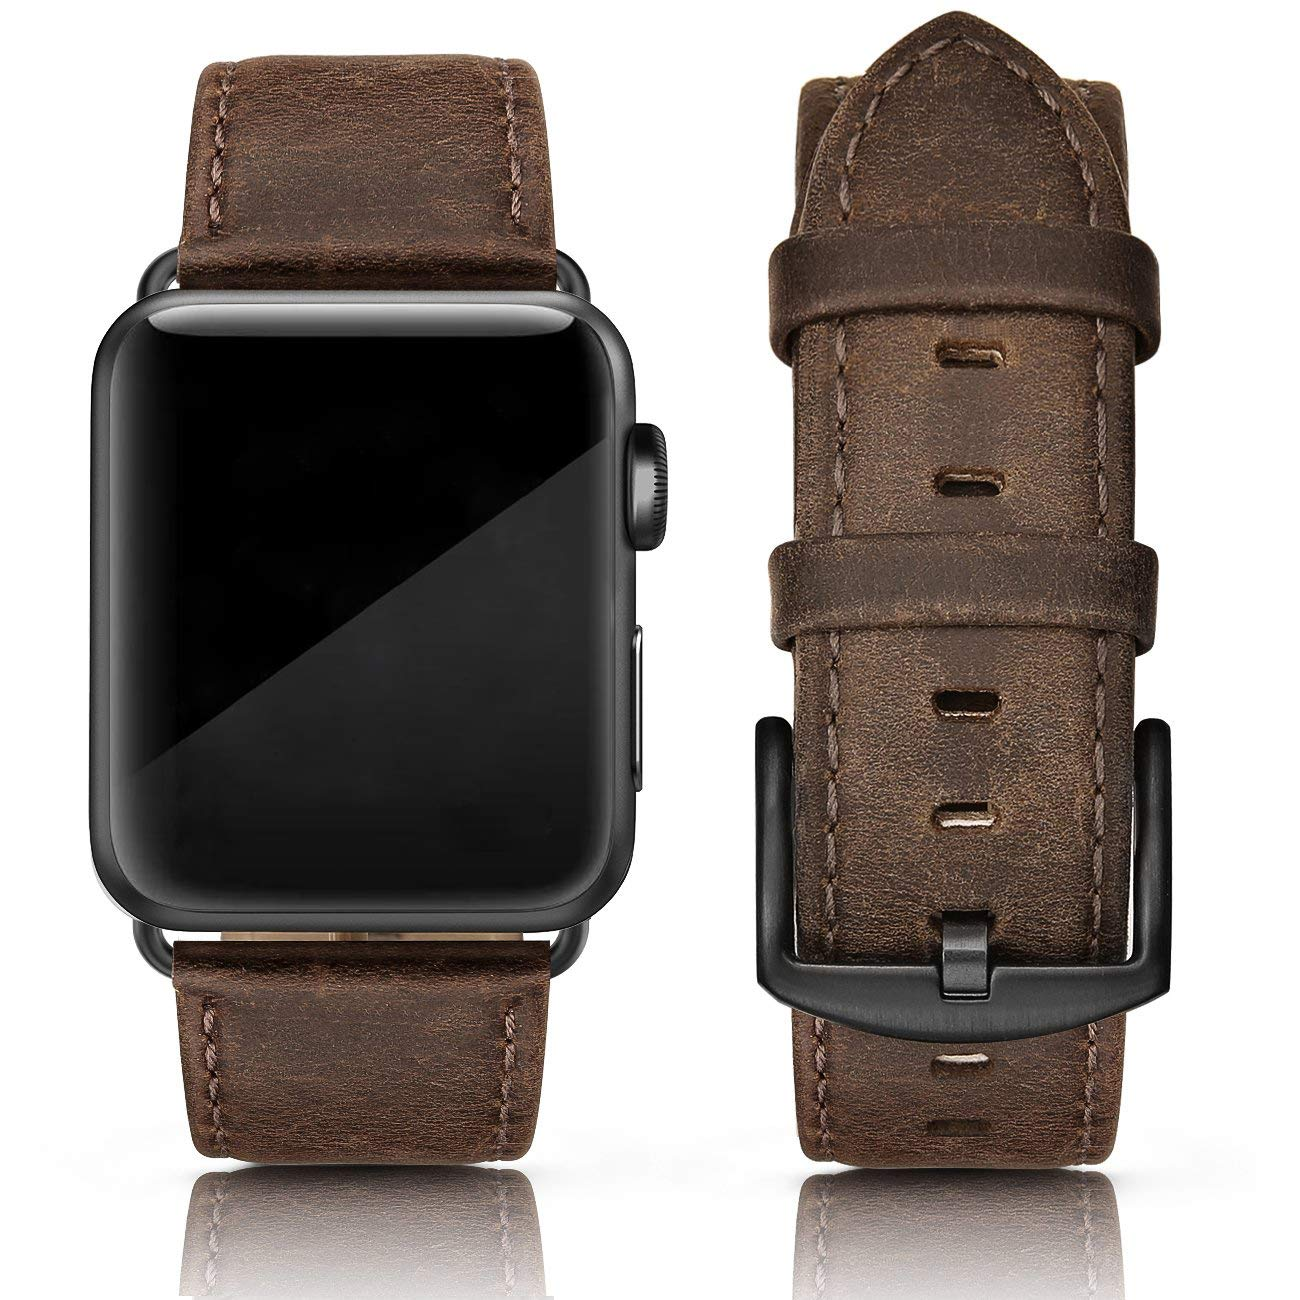 SWEES Leather Band Compatible for Apple Watch 42mm 44mm, Genuine Leather Vintage Strap Wristband Compatible iWatch Series 4, Series 3, Series 2, Series 1, Sports & Edition Men, Retro Brown by SWEES